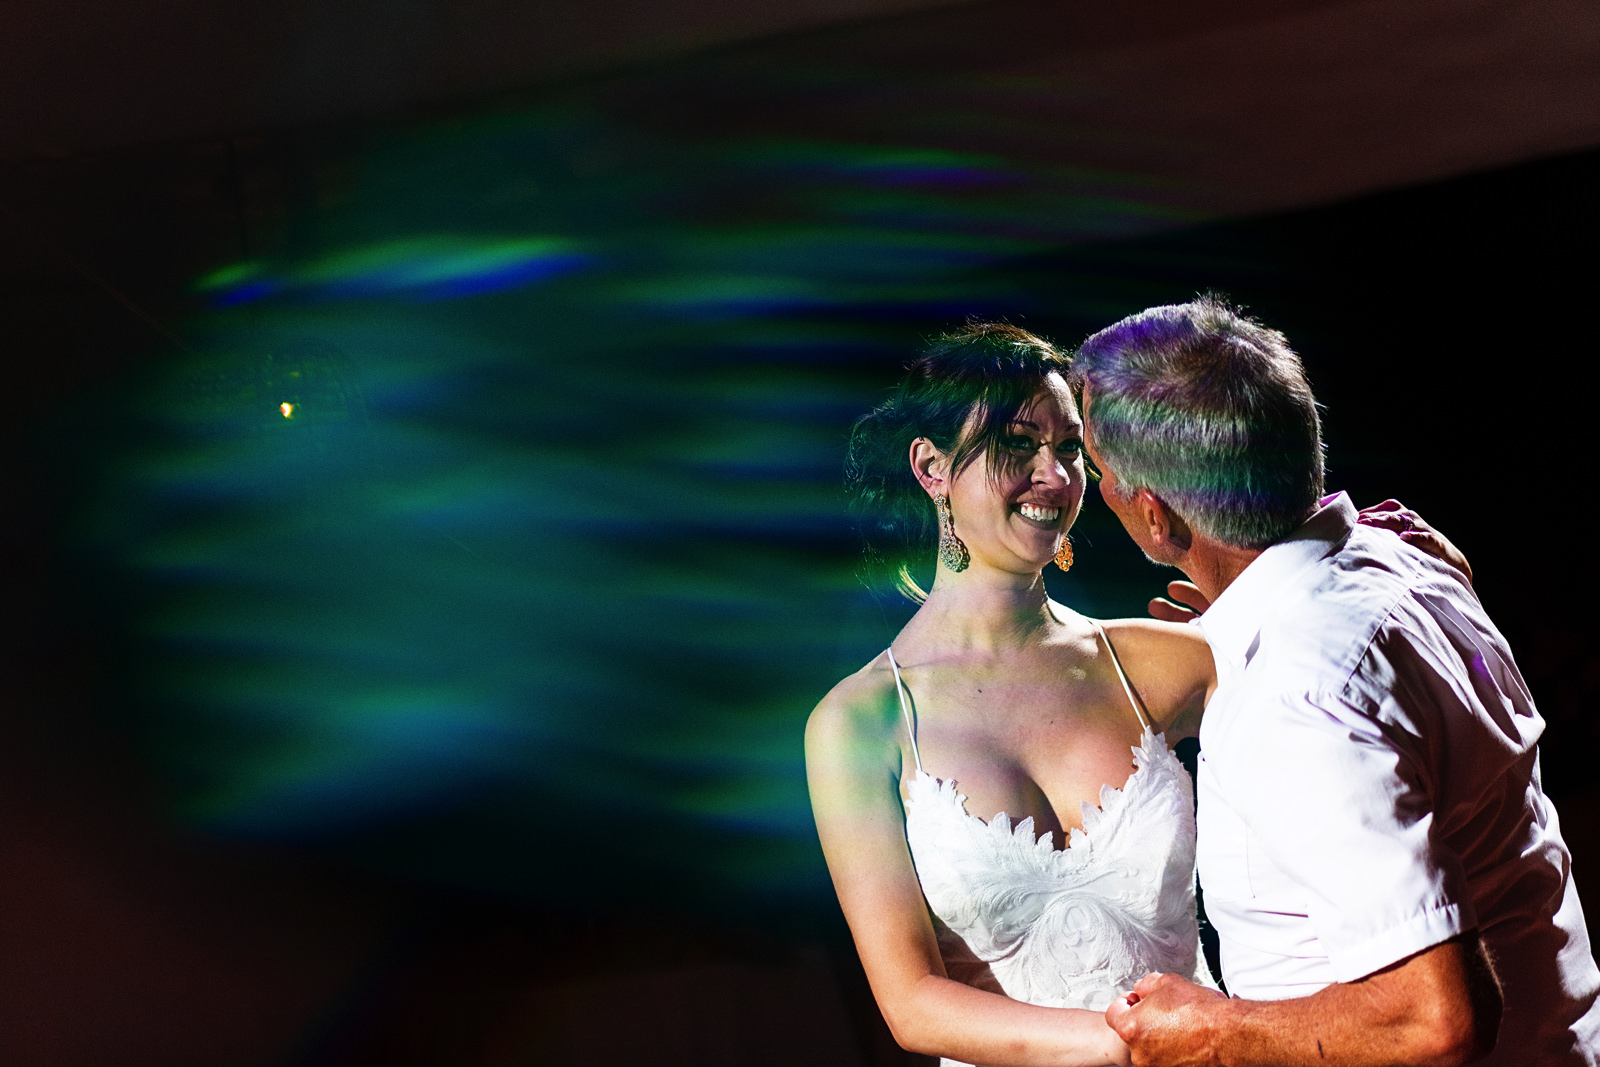 Bride and father dance with a green lens flare